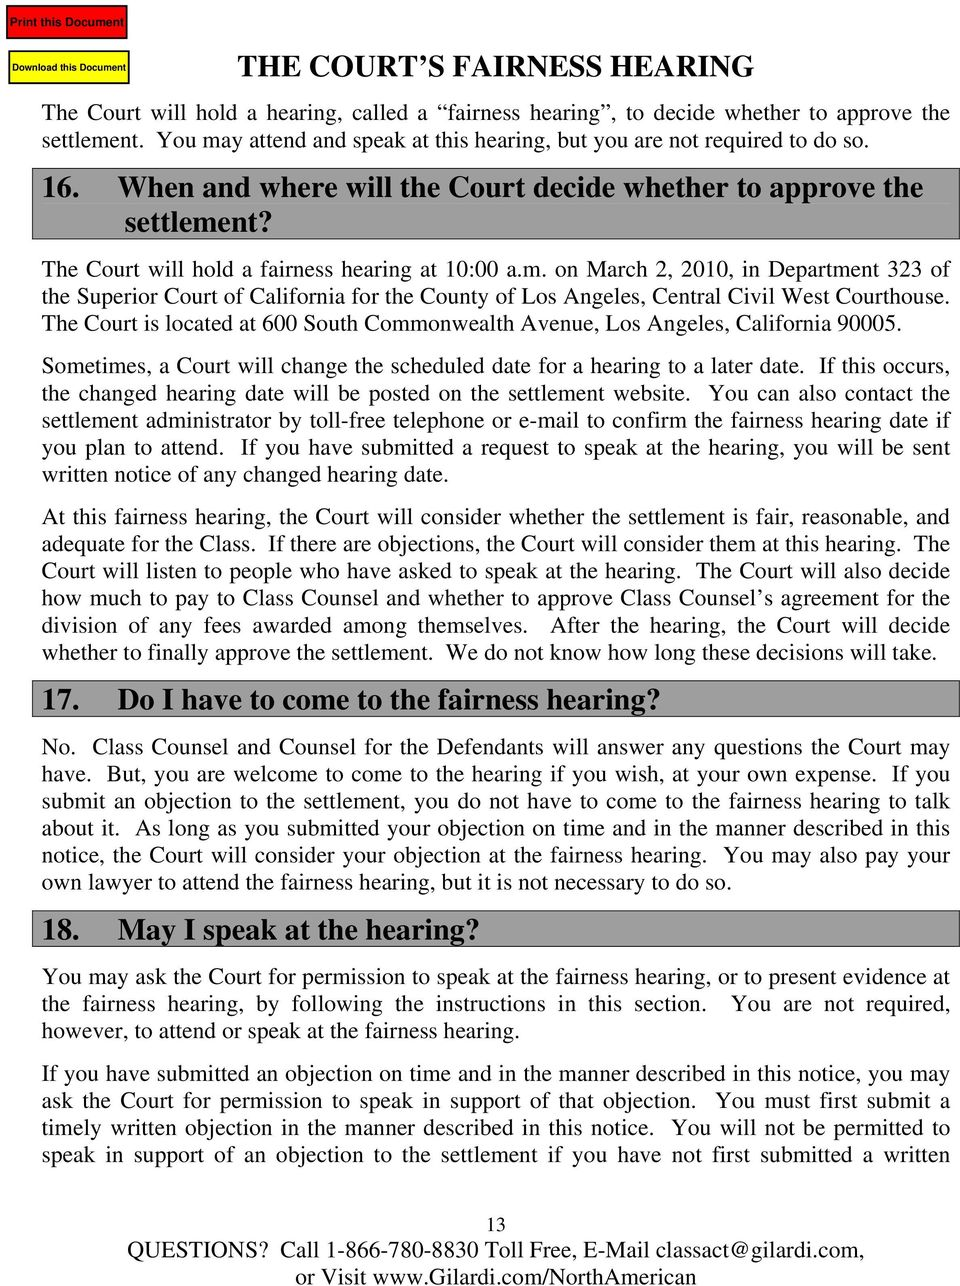 The Court will hold a fairness hearing at 10:00 a.m. on March 2, 2010, in Department 323 of the Superior Court of California for the County of Los Angeles, Central Civil West Courthouse.